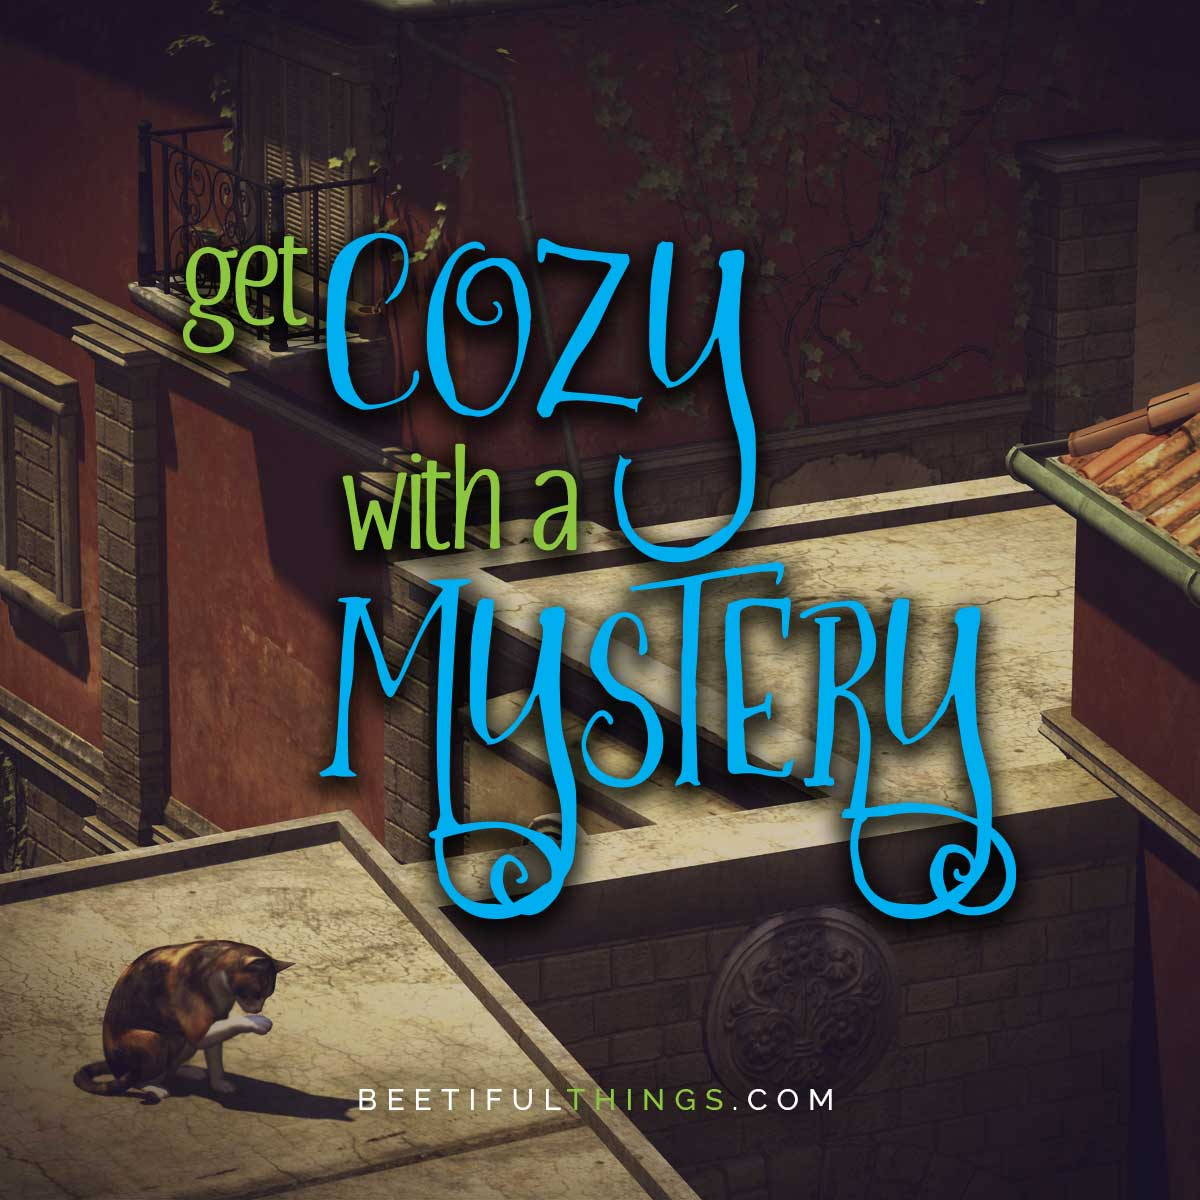 Get Cozy with a Cozy Mystery